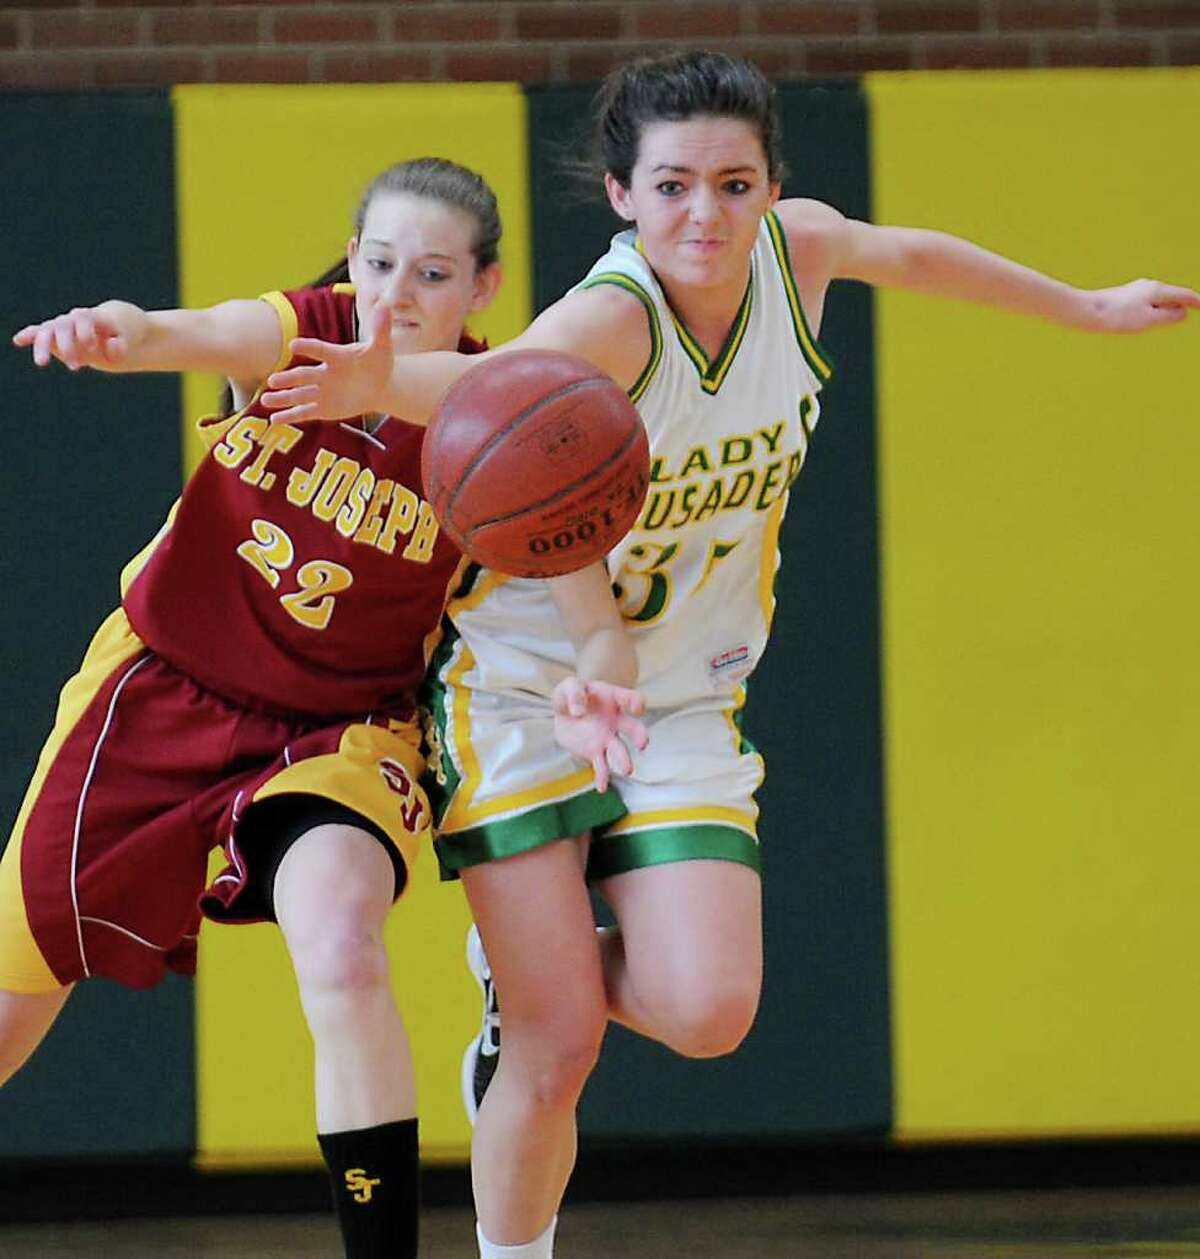 St. Joseph's Nancy Stablein and Trinity Catholic's Nicole Fay battle for control of the ball in girls basketball FCIAC quarterfinals at Trinity in Stamford, Conn. on Saturday February 19, 2011. St. Joseph beat Trinity 44-41.